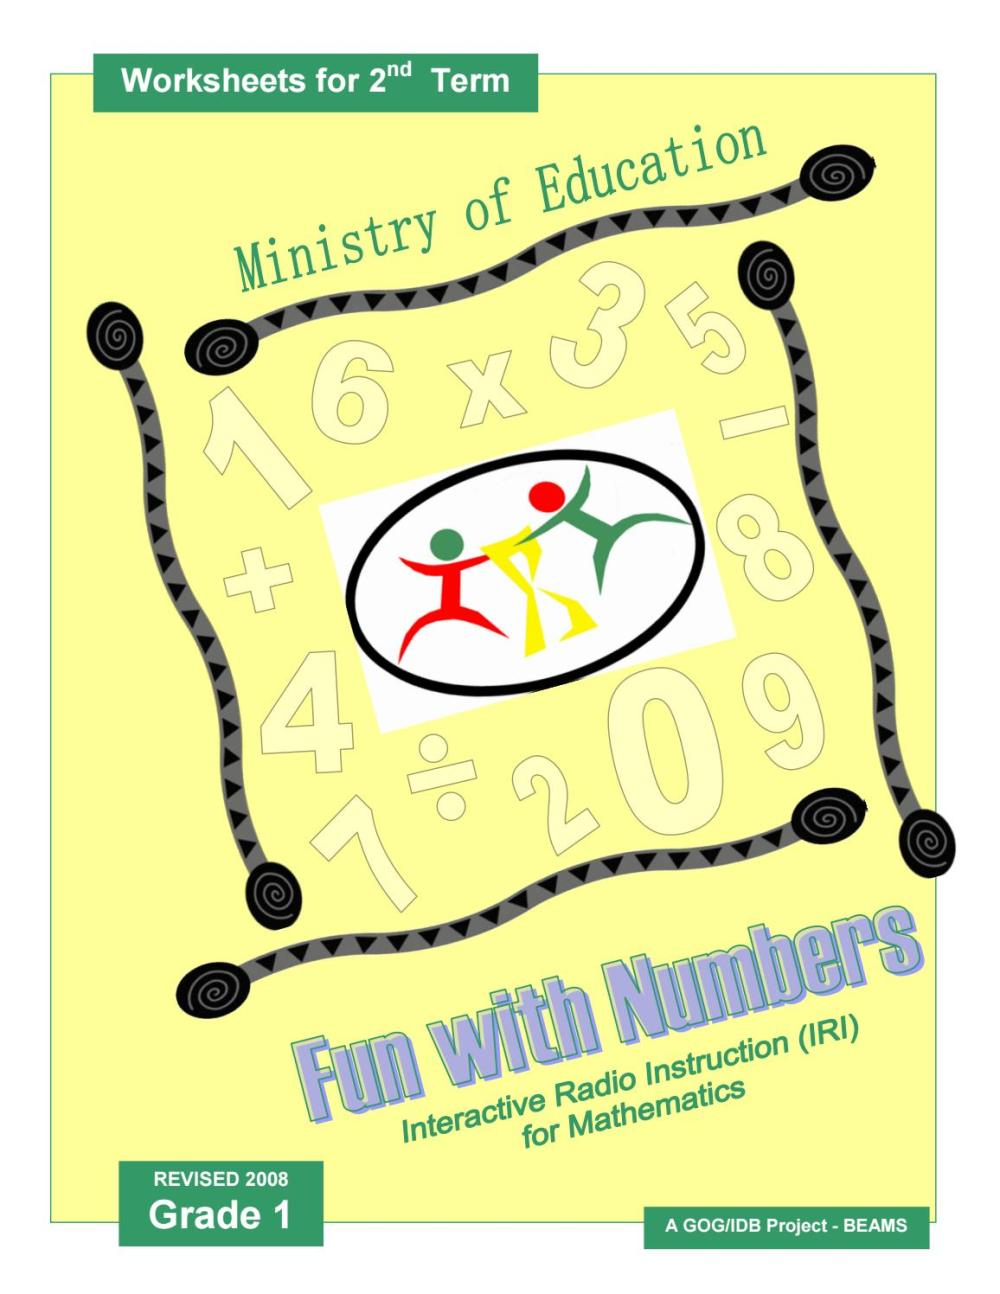 medium resolution of IRI Fun with Numbers Worksheets - Grade 1 - Term 2 by Ministry of Education  Guyana - issuu